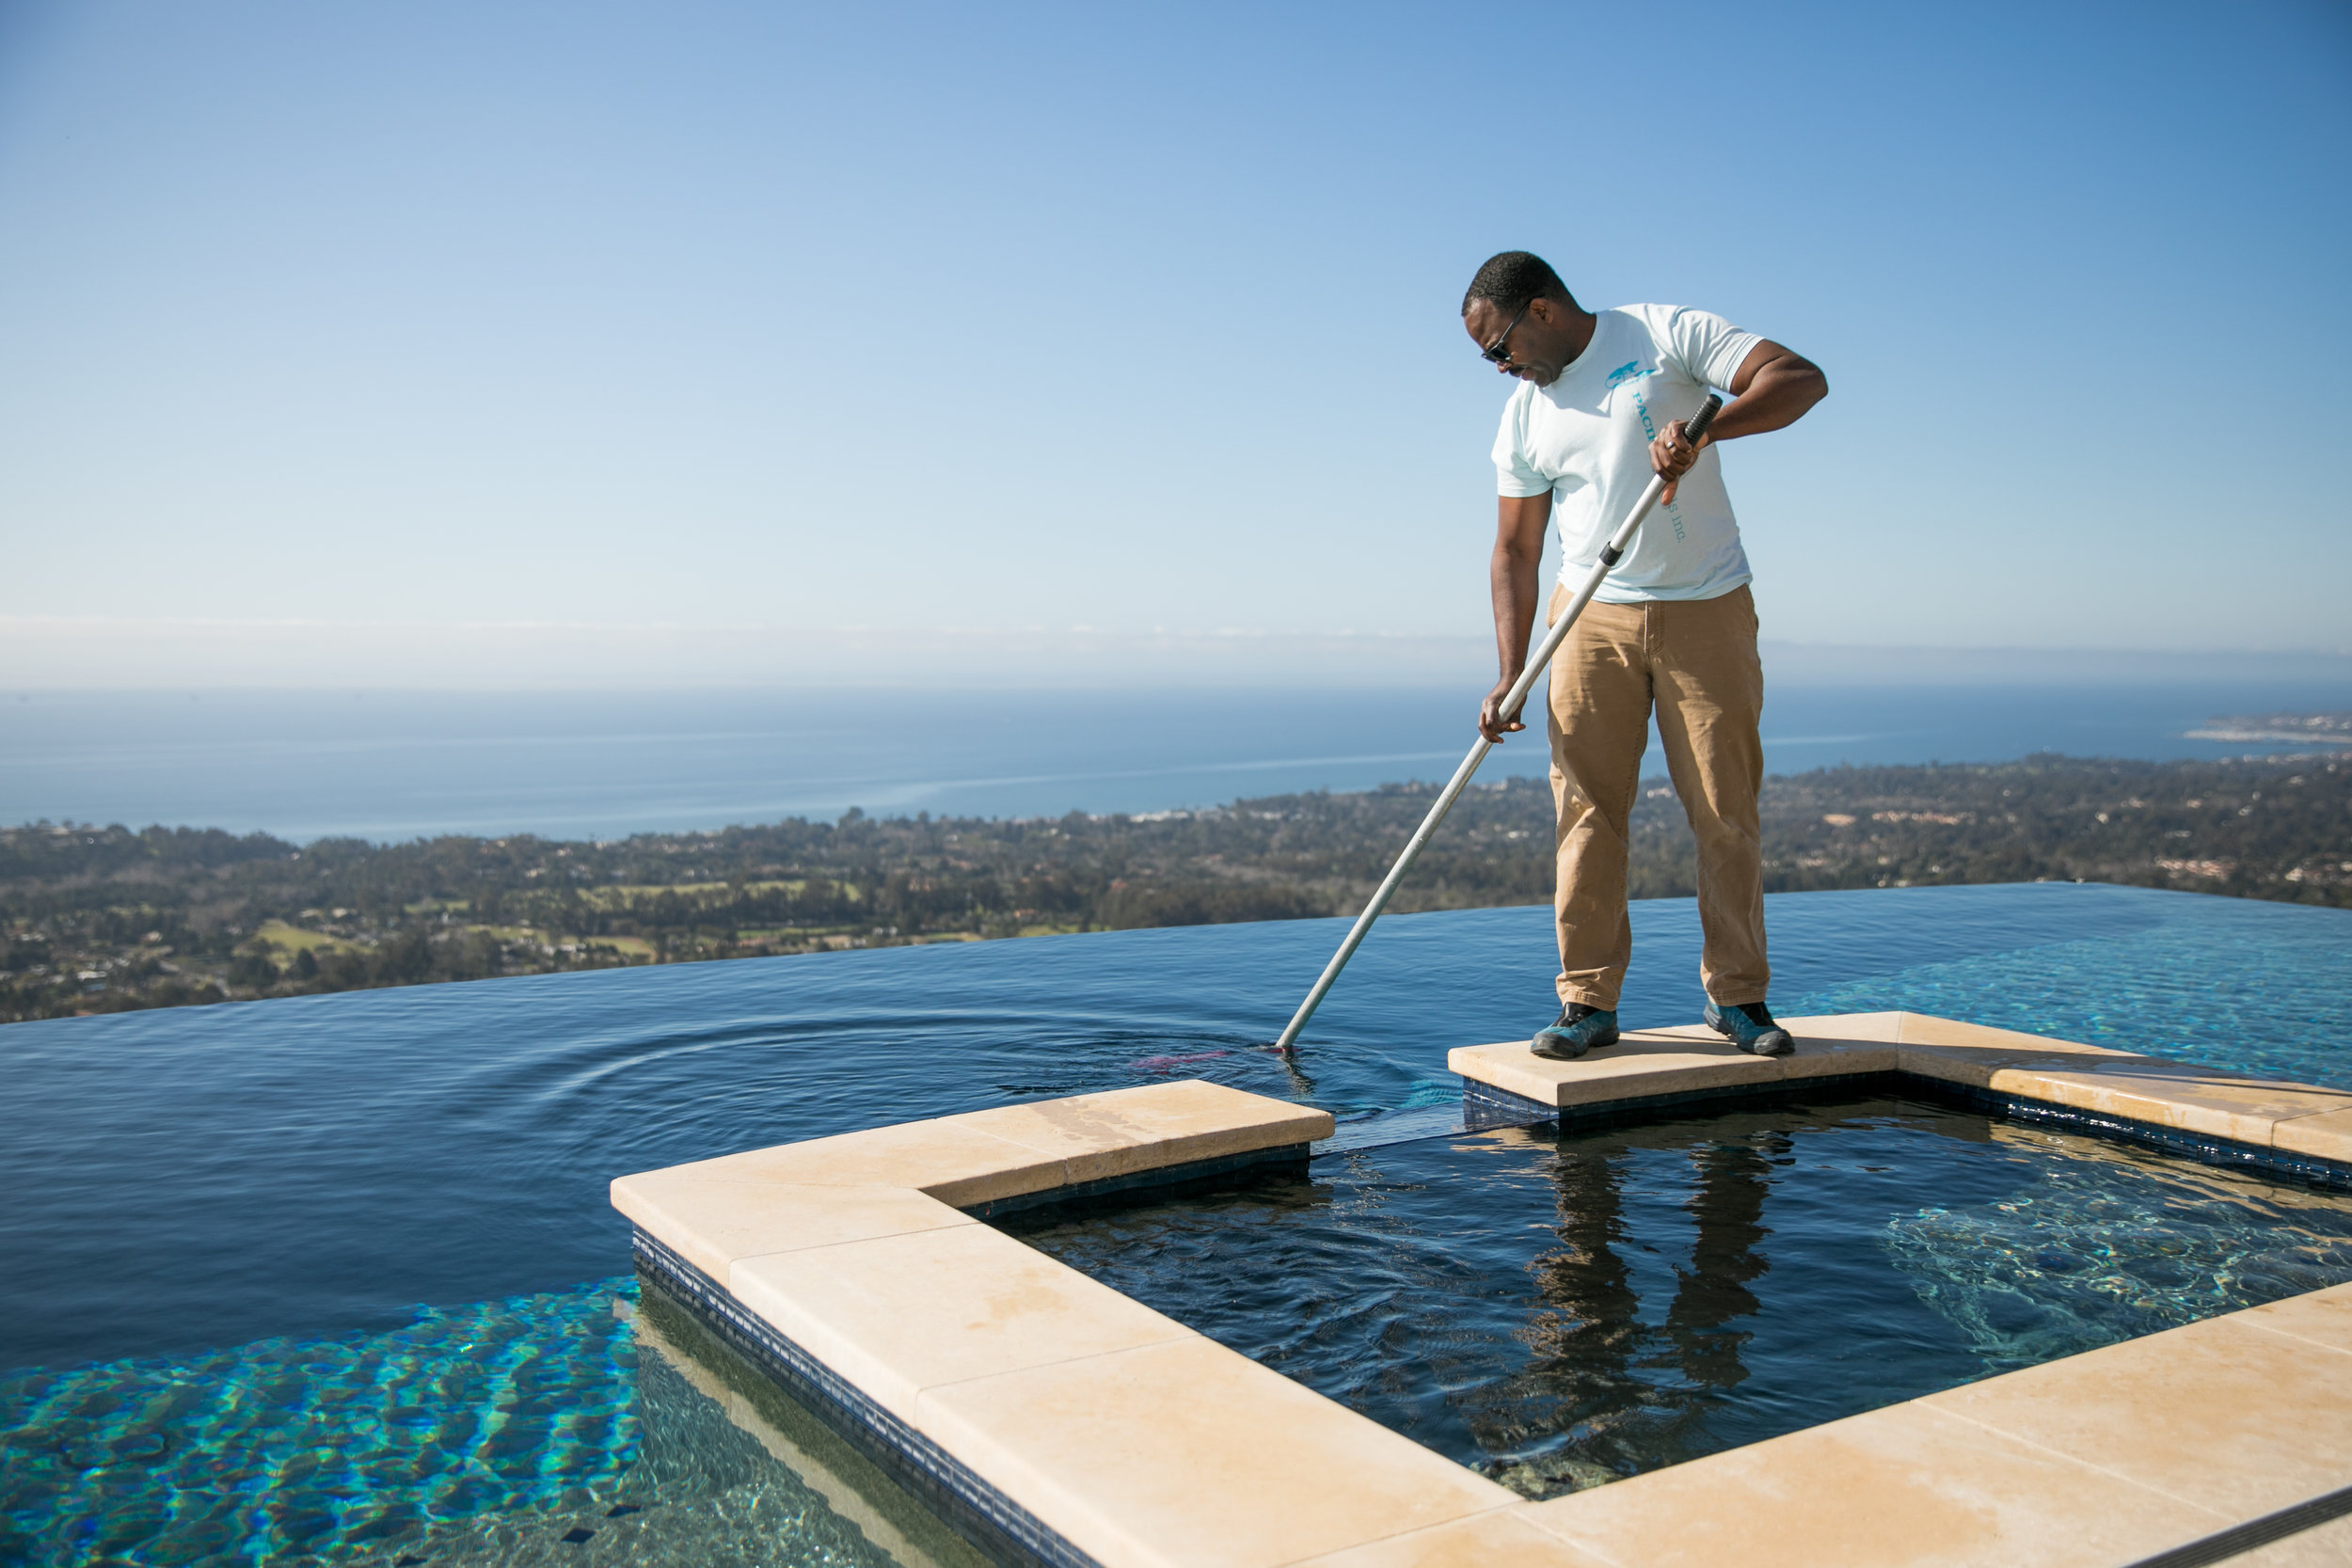 Every pool cleaner can clean a pool. What are the most unique problems you can solve?